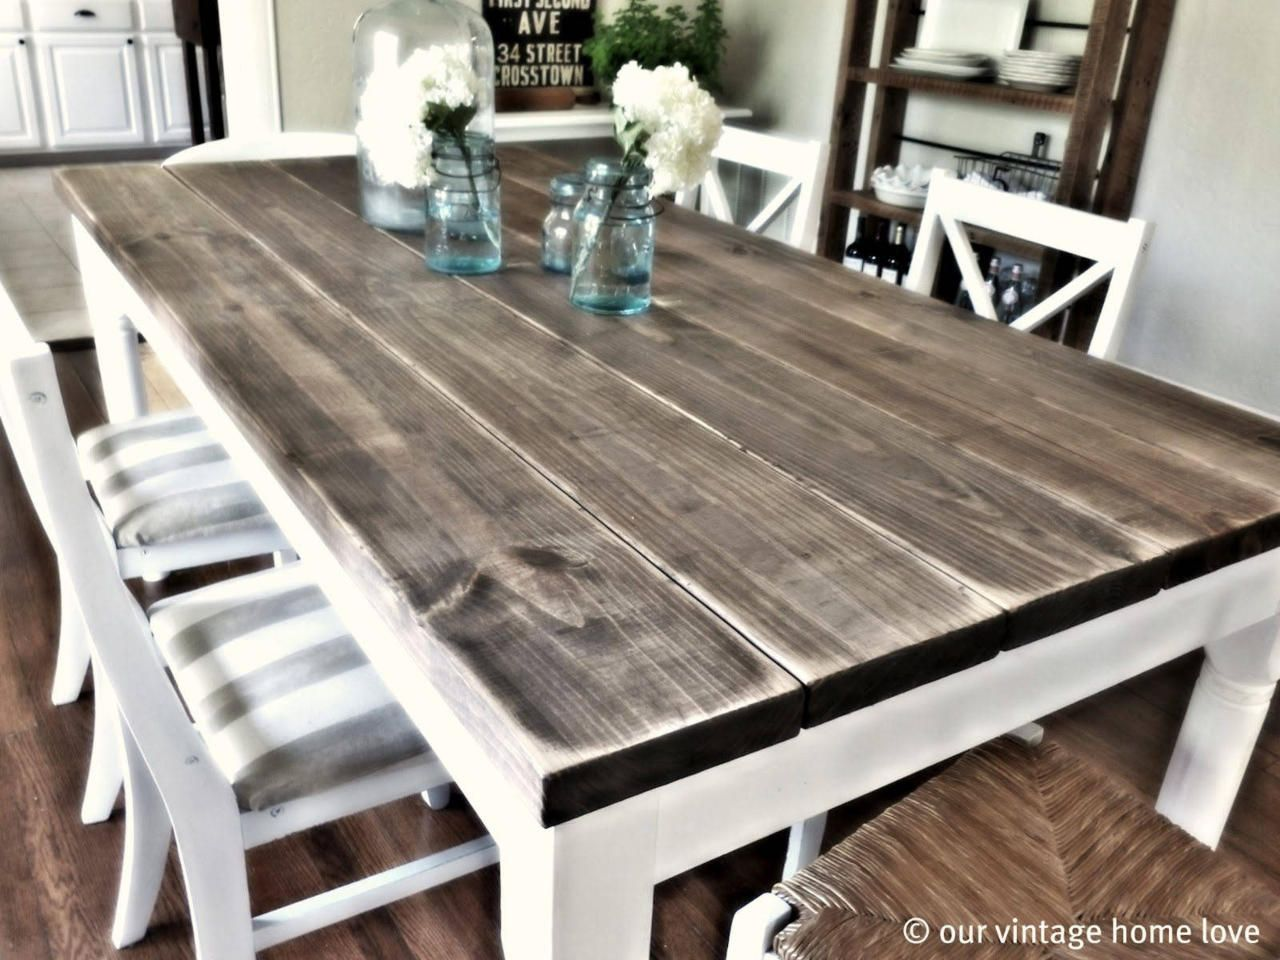 colorful kitchen tables wooden kitchen tables farmhouse kitchen tables and chairs distressed farmhouse table